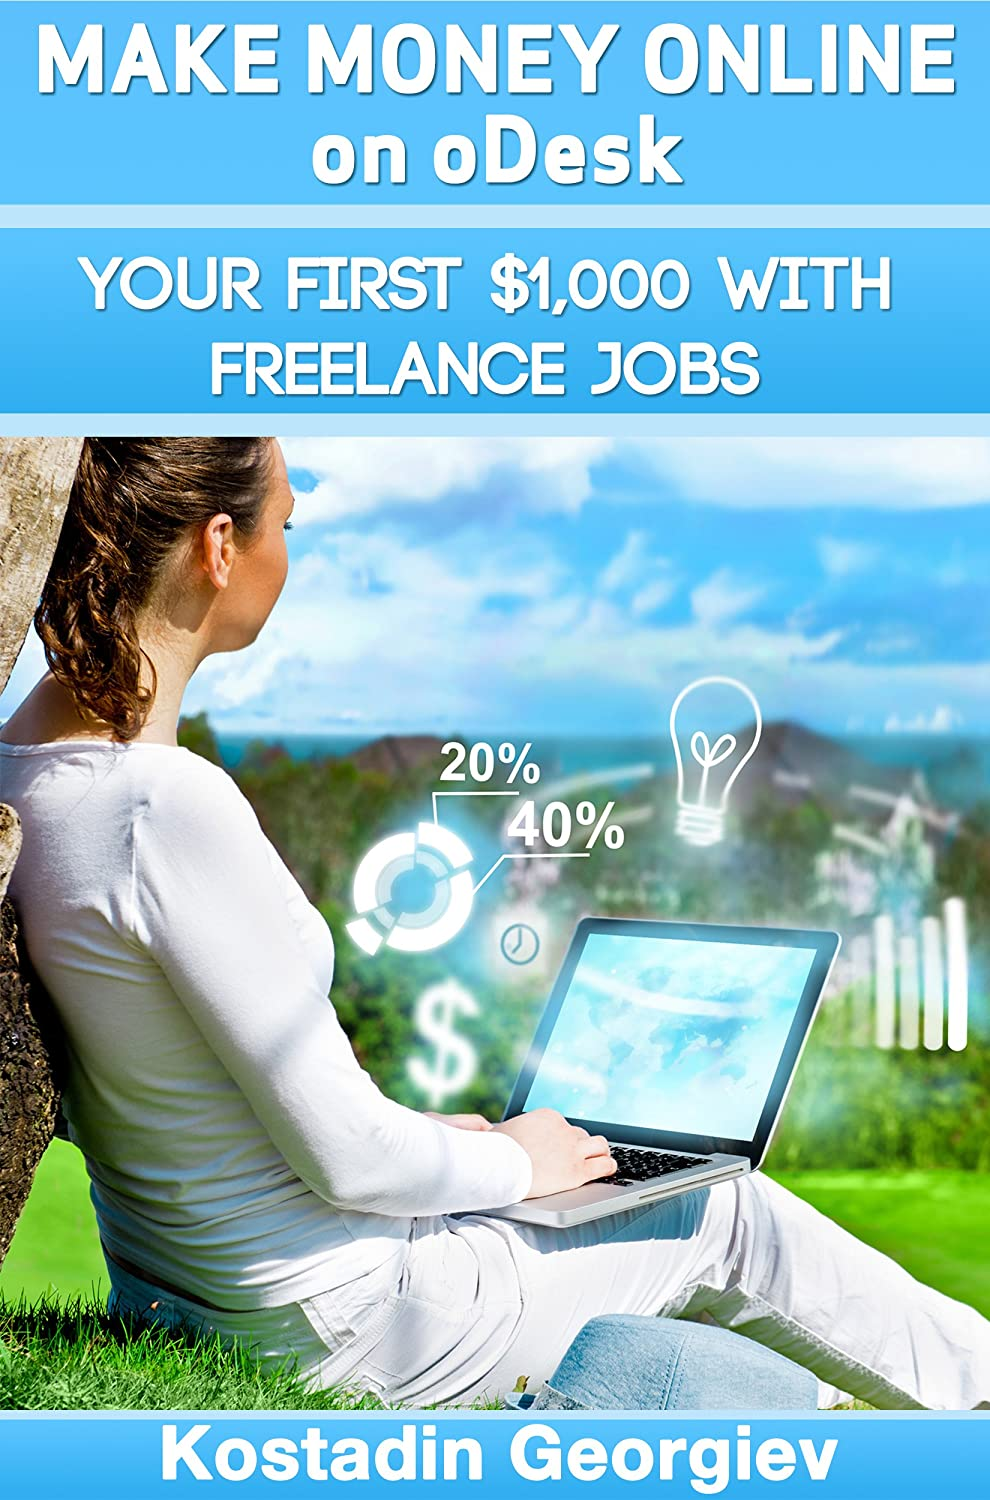 Make-money-online-with-odesk1